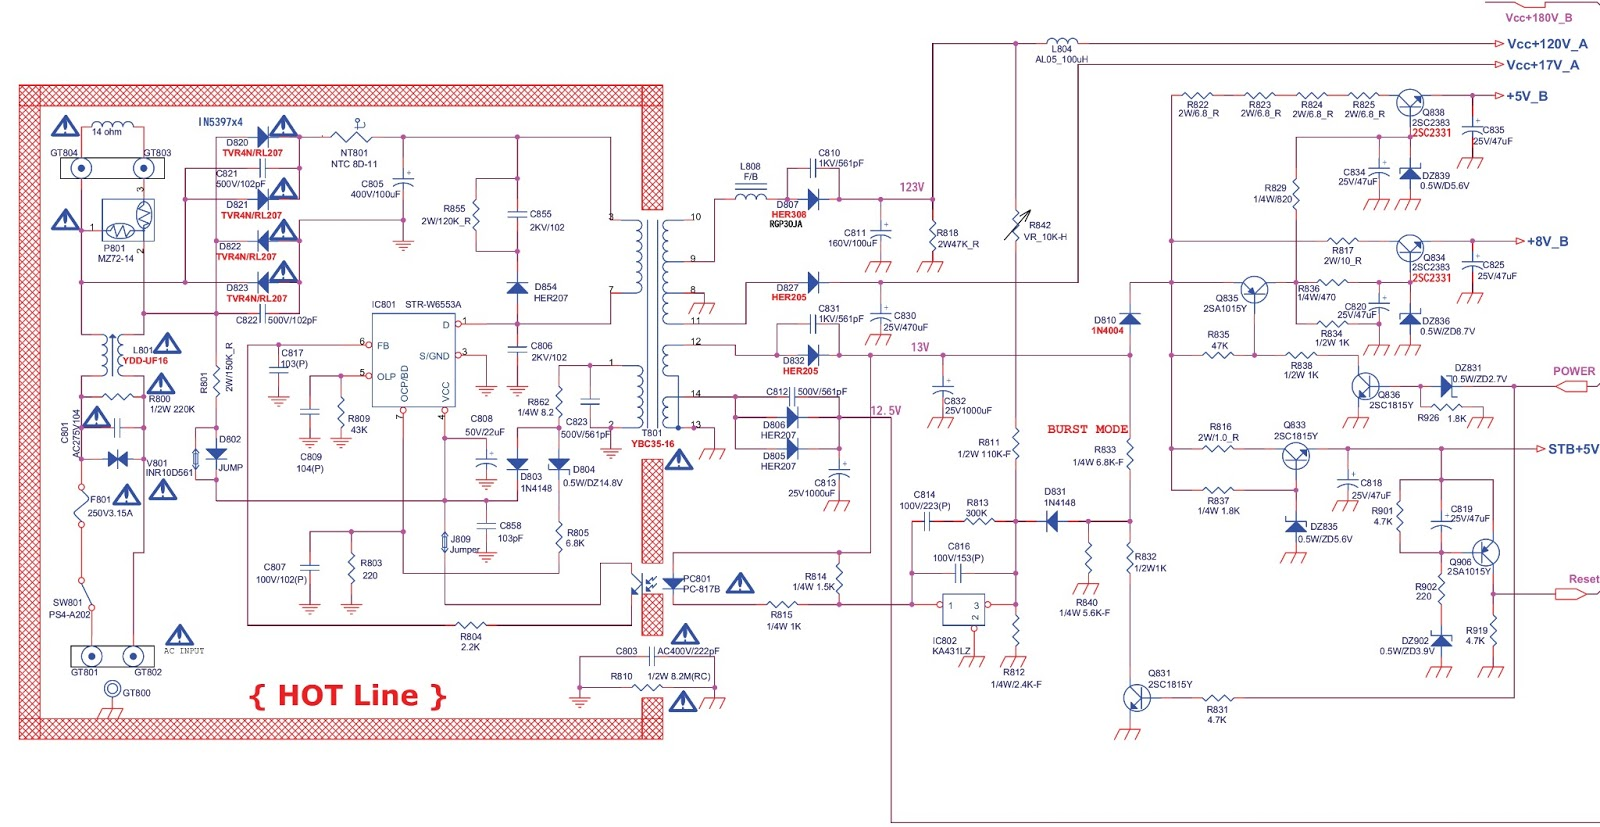 Str W6553a Based Smps Power Supply Regulator Schematic Diagram Circuit Used In Daewoo Tvs